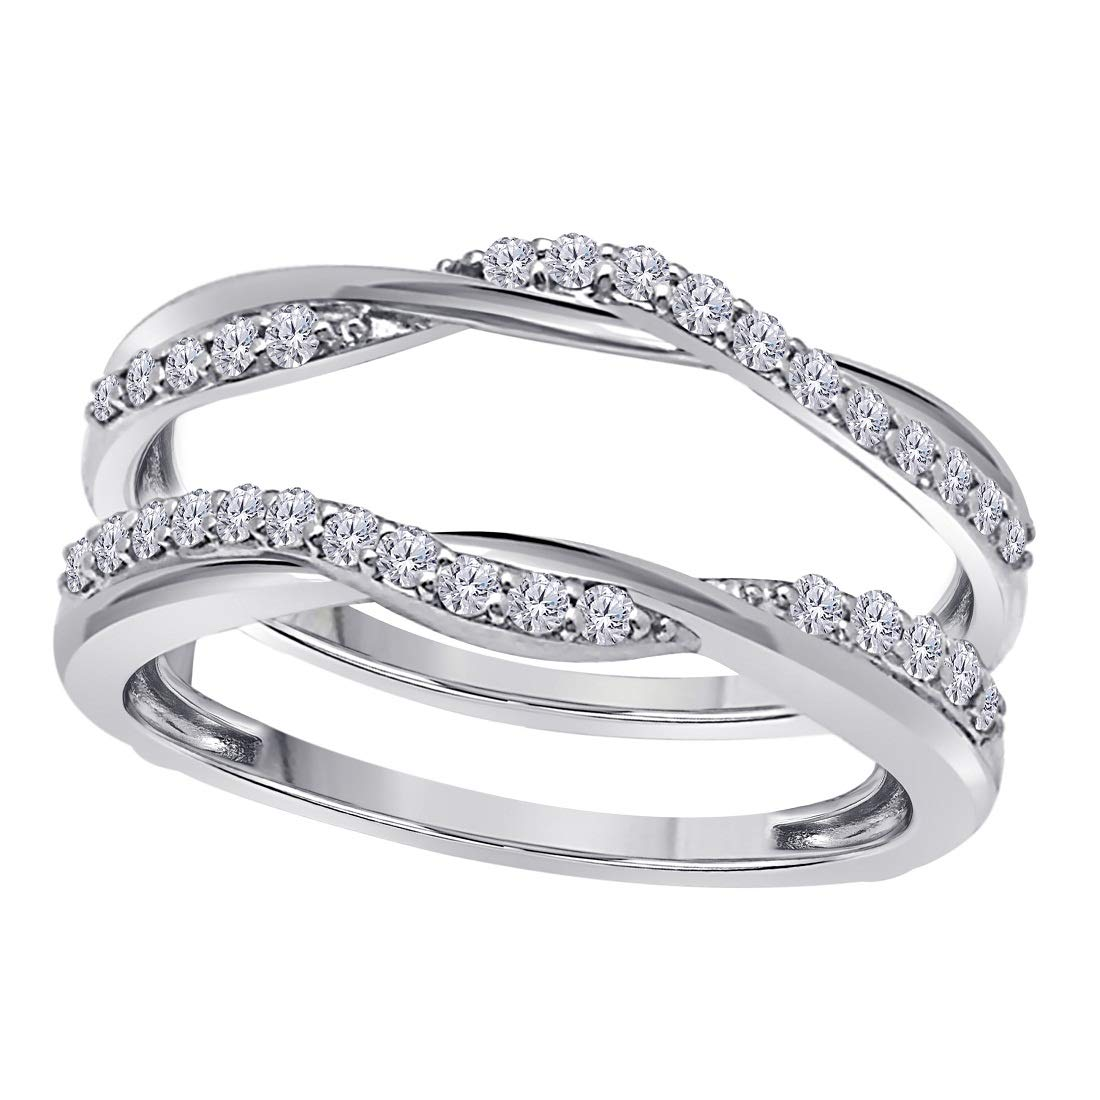 Sterling Silver Delicate Bypass Infinity Style Vintage Wedding Ring Guard Enhancer with CZ Simulated Diamond by Celebrityinspired jewelry